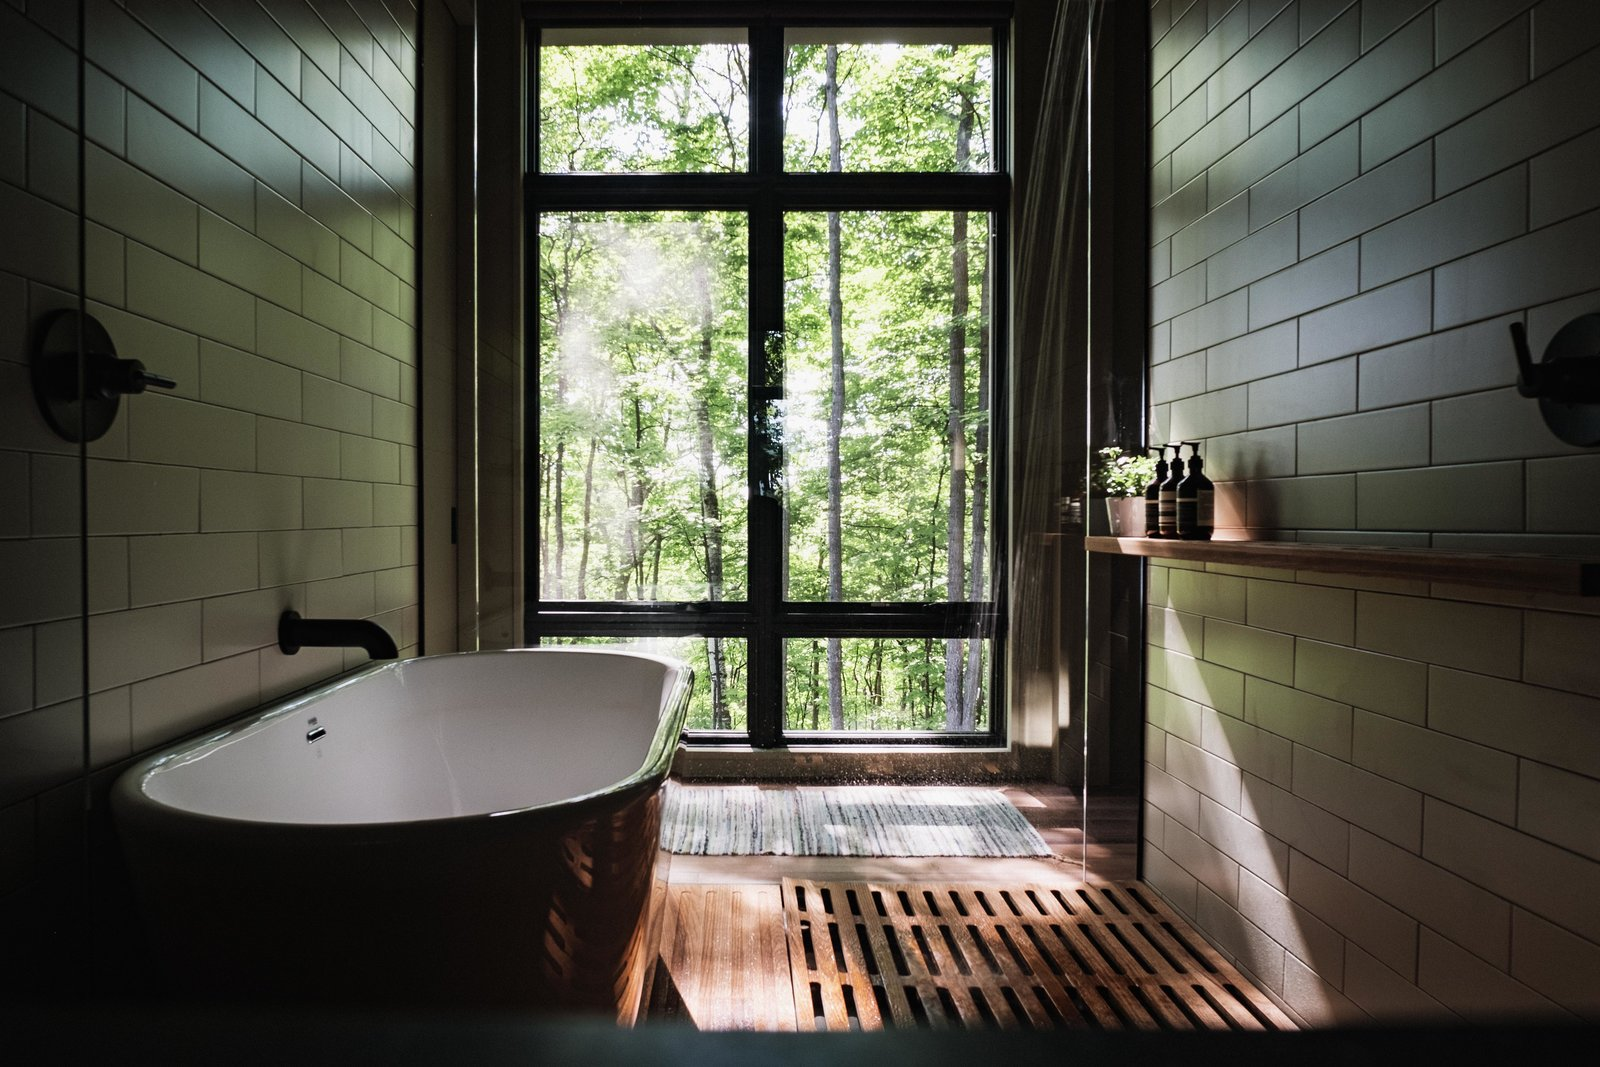 Bath, Pendant, Undermount, Soaking, Medium Hardwood, Two Piece, Open, Ceiling, Freestanding, and Subway Tile Master bath wet room with views of trees.  Bath Medium Hardwood Ceiling Pendant Photos from Birch Le Collaboration House